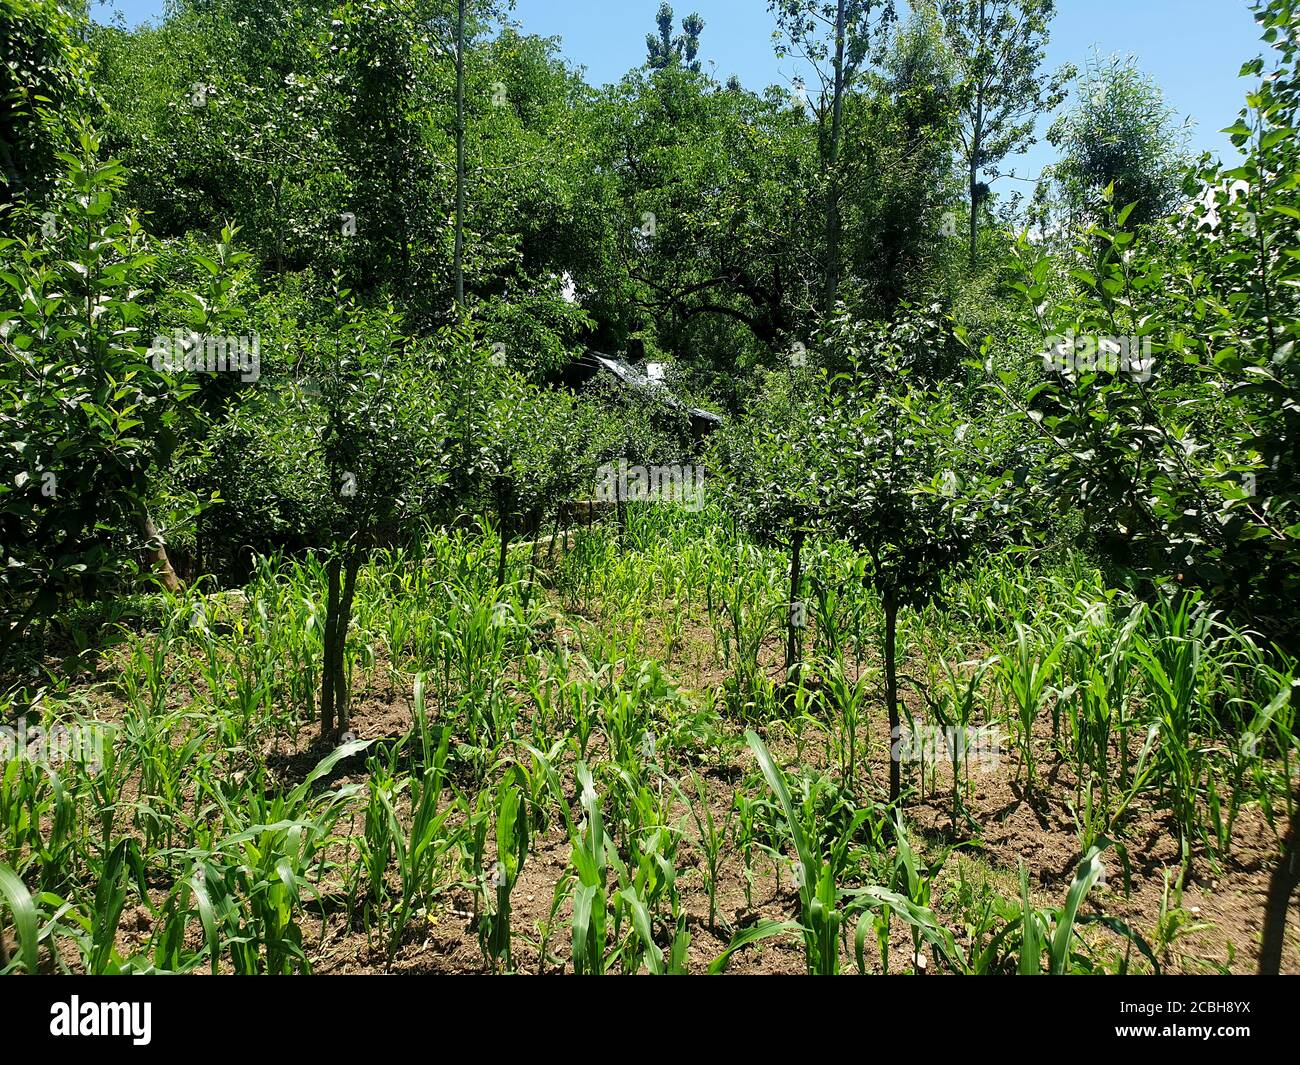 Spring Buds Flowers New Fruits Tree Branches Greenery And Green Beauty Of Nature Small Trees Are Growing In New Spring The Beautiful Scenery Of Natu Stock Photo Alamy